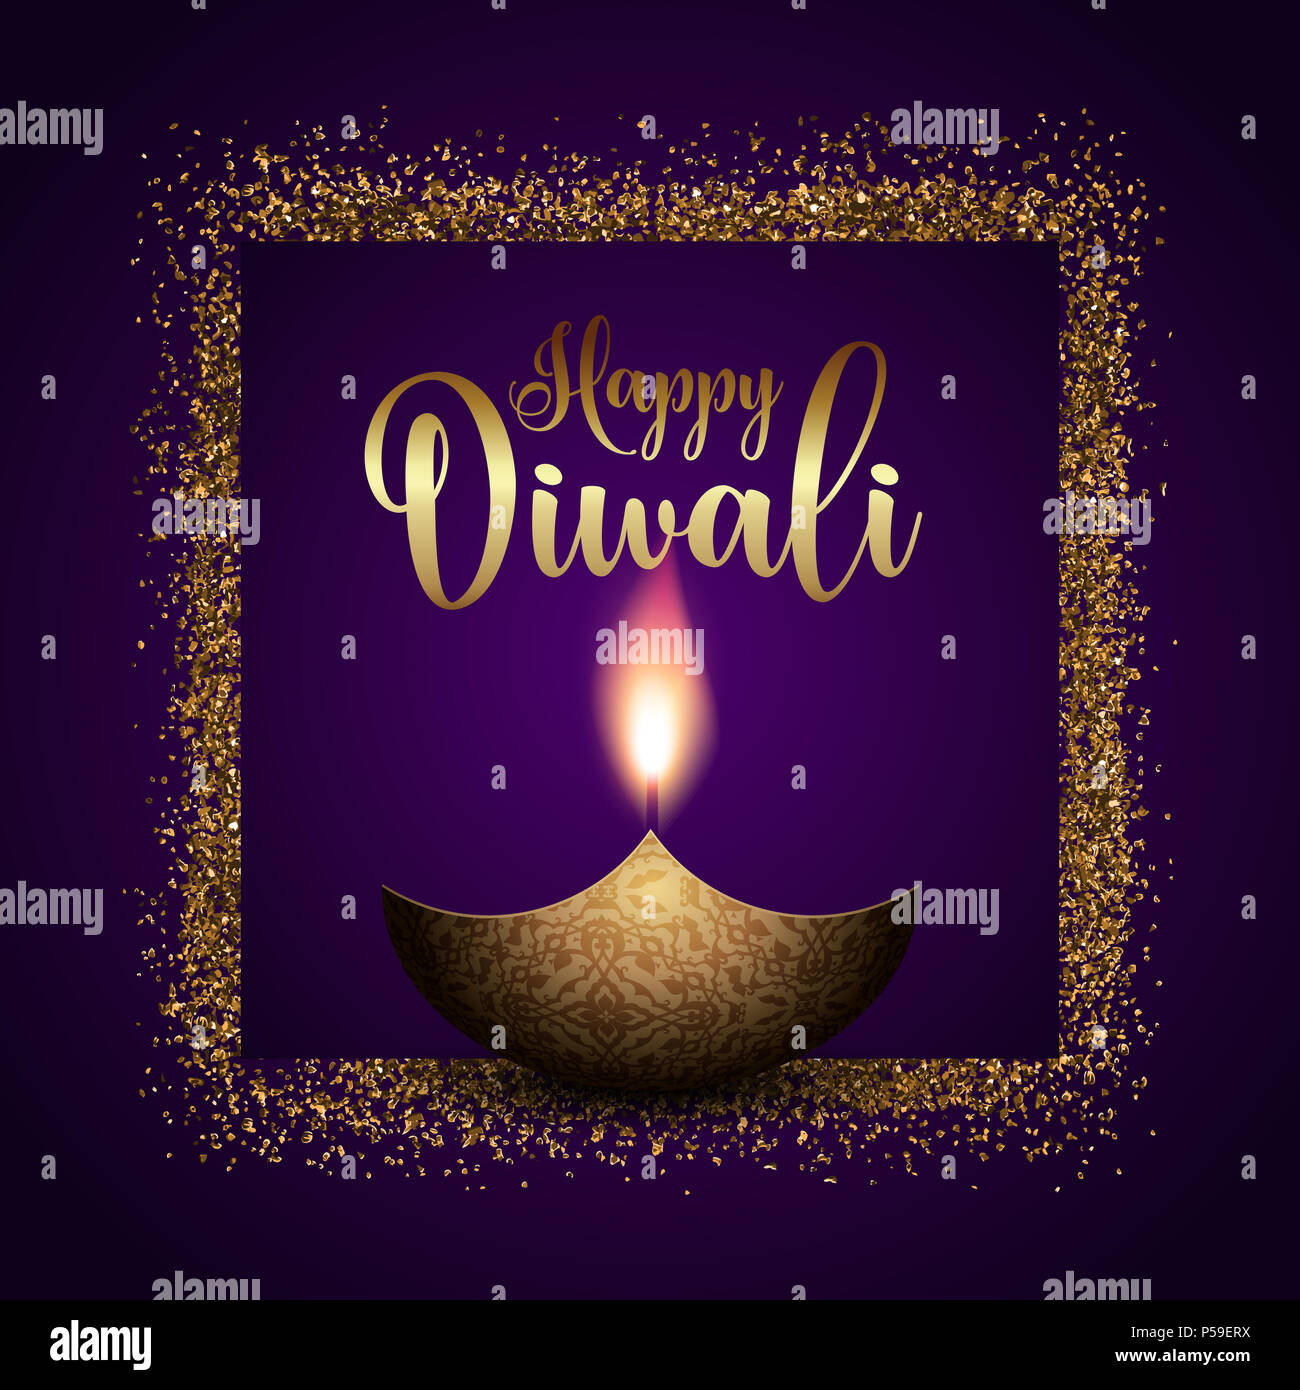 Happy Diwali background with gold glitter frame Stock Photo